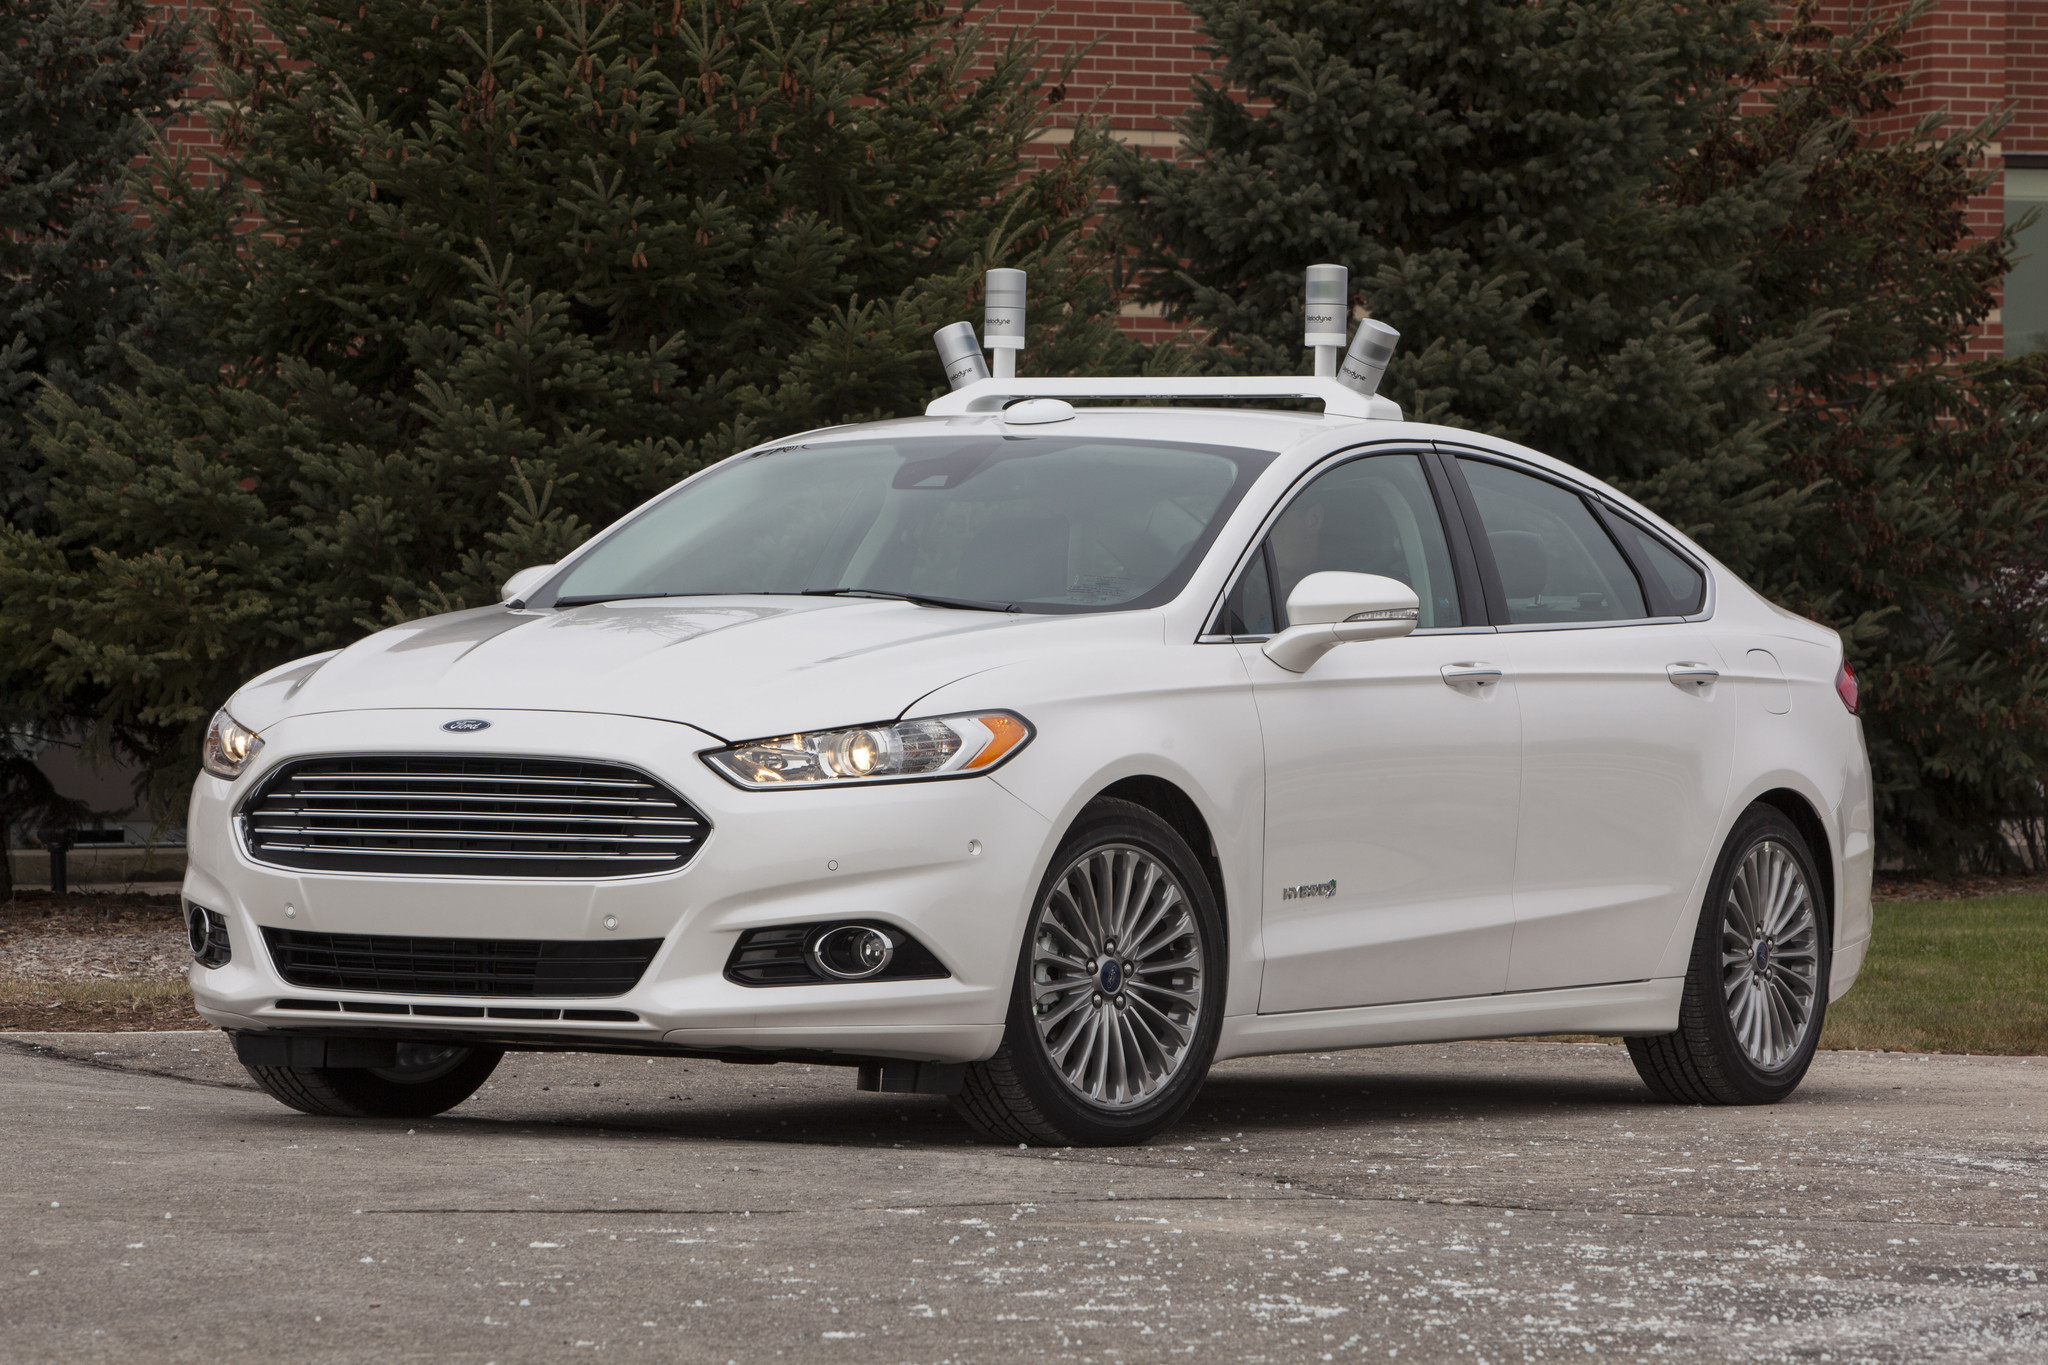 Uber Vehicle List >> Ford driverless car to hit California roads - LA Times